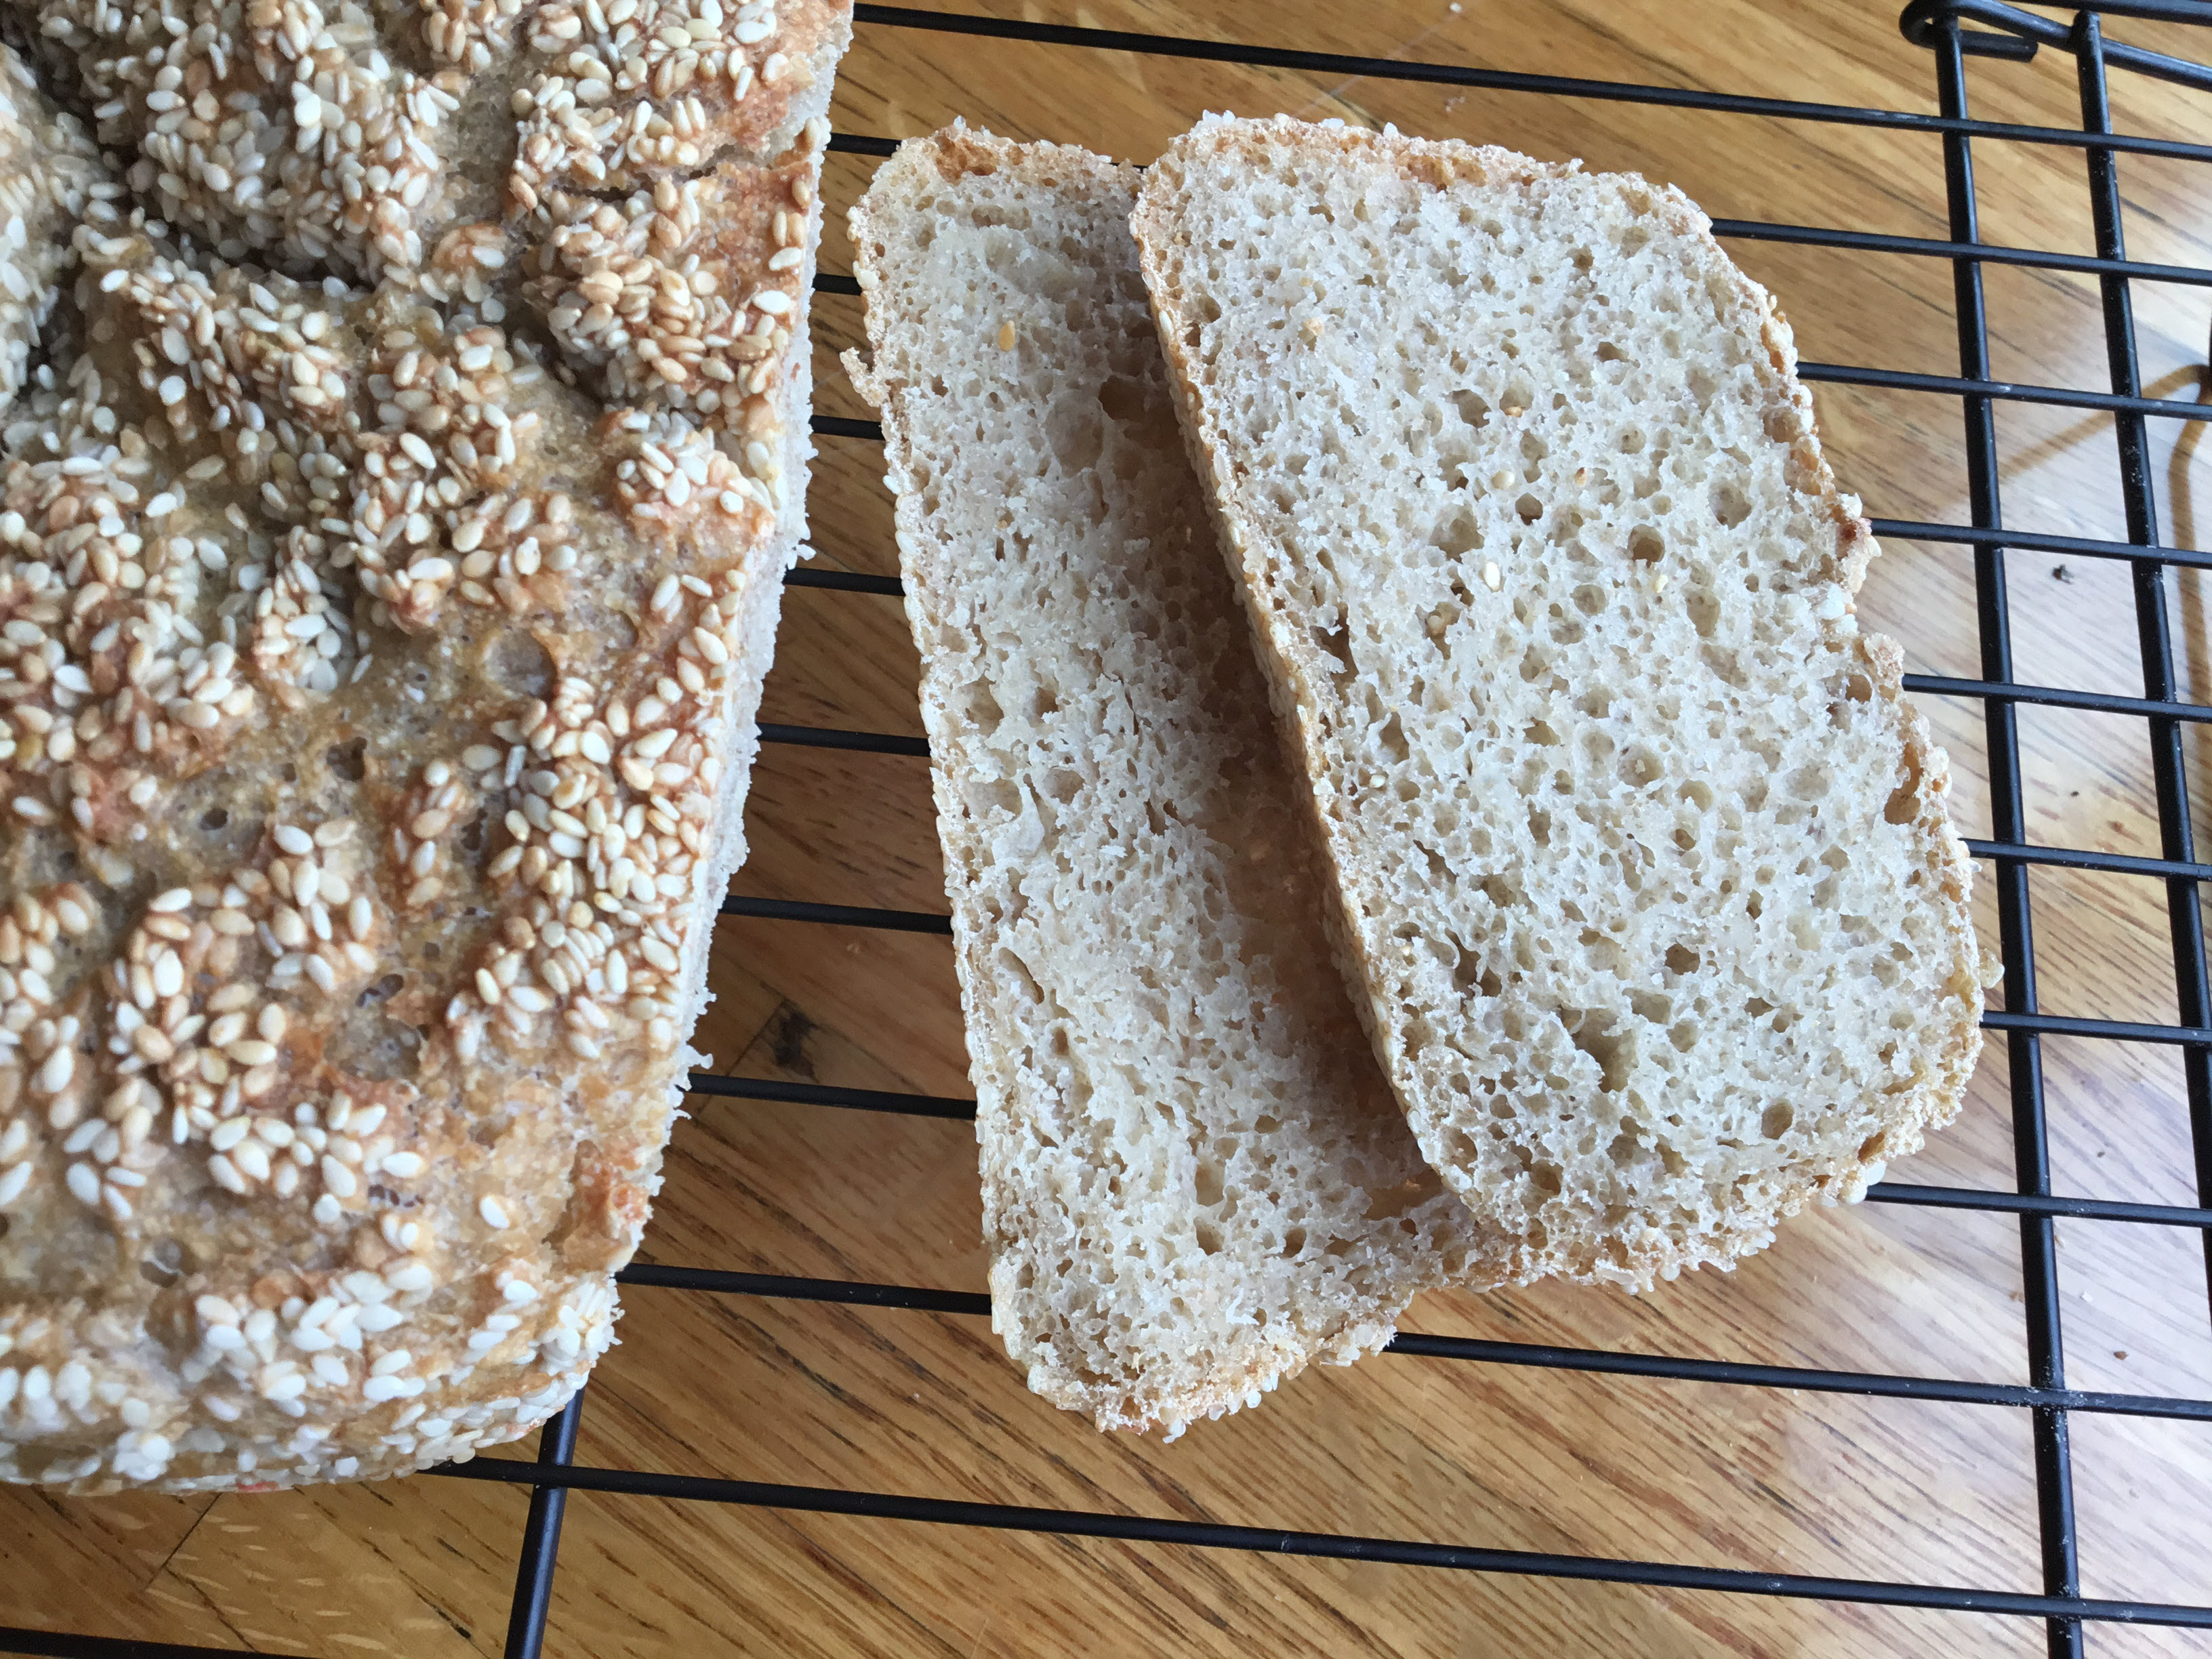 Slow Cooker Bread nch